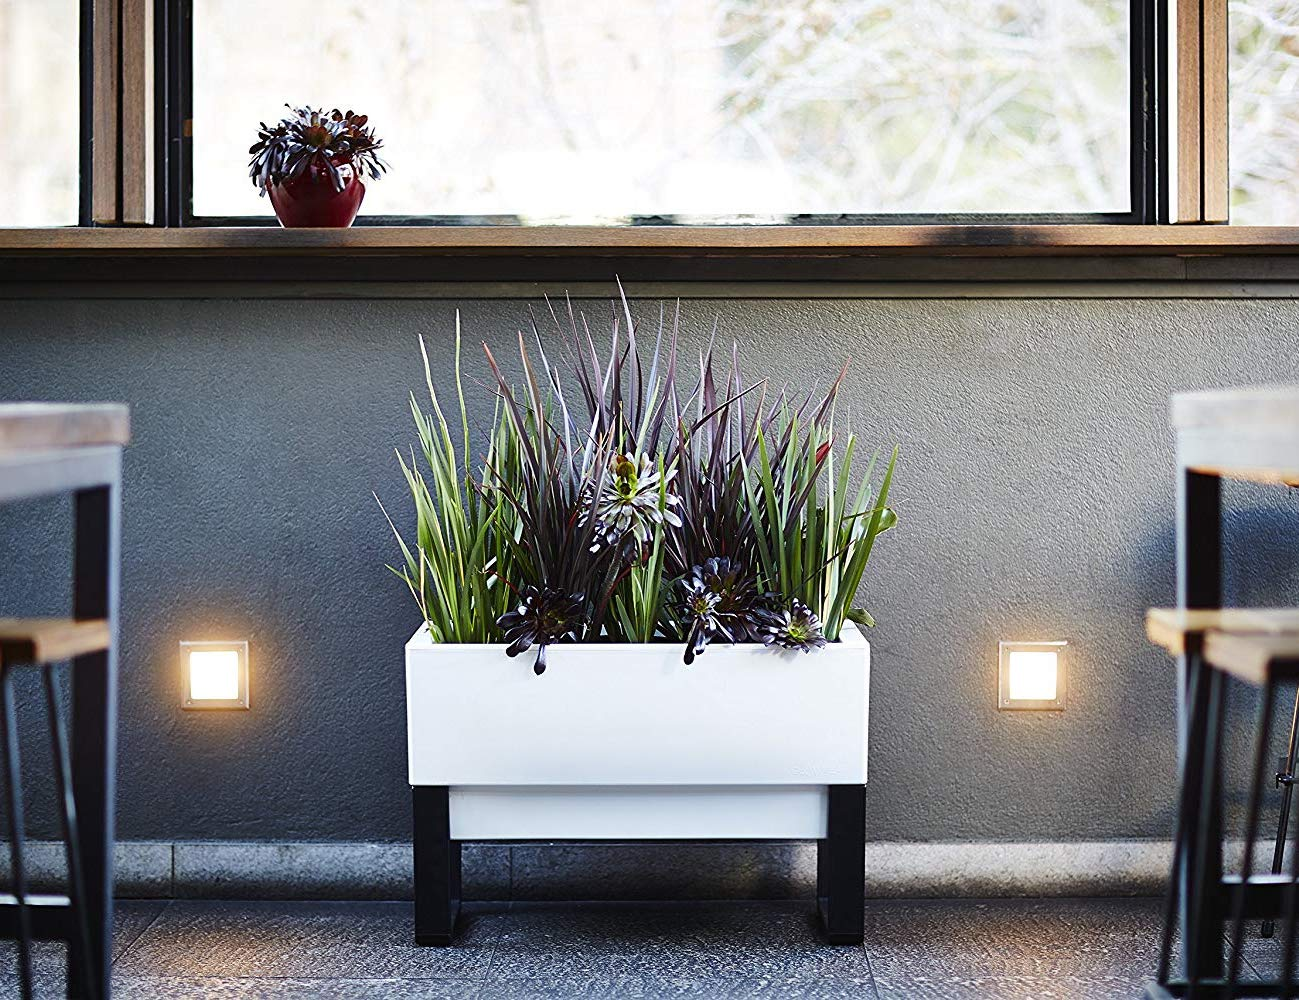 Glowpear Urban Garden Self-Watering Planter Box is an eco-friendly time saver